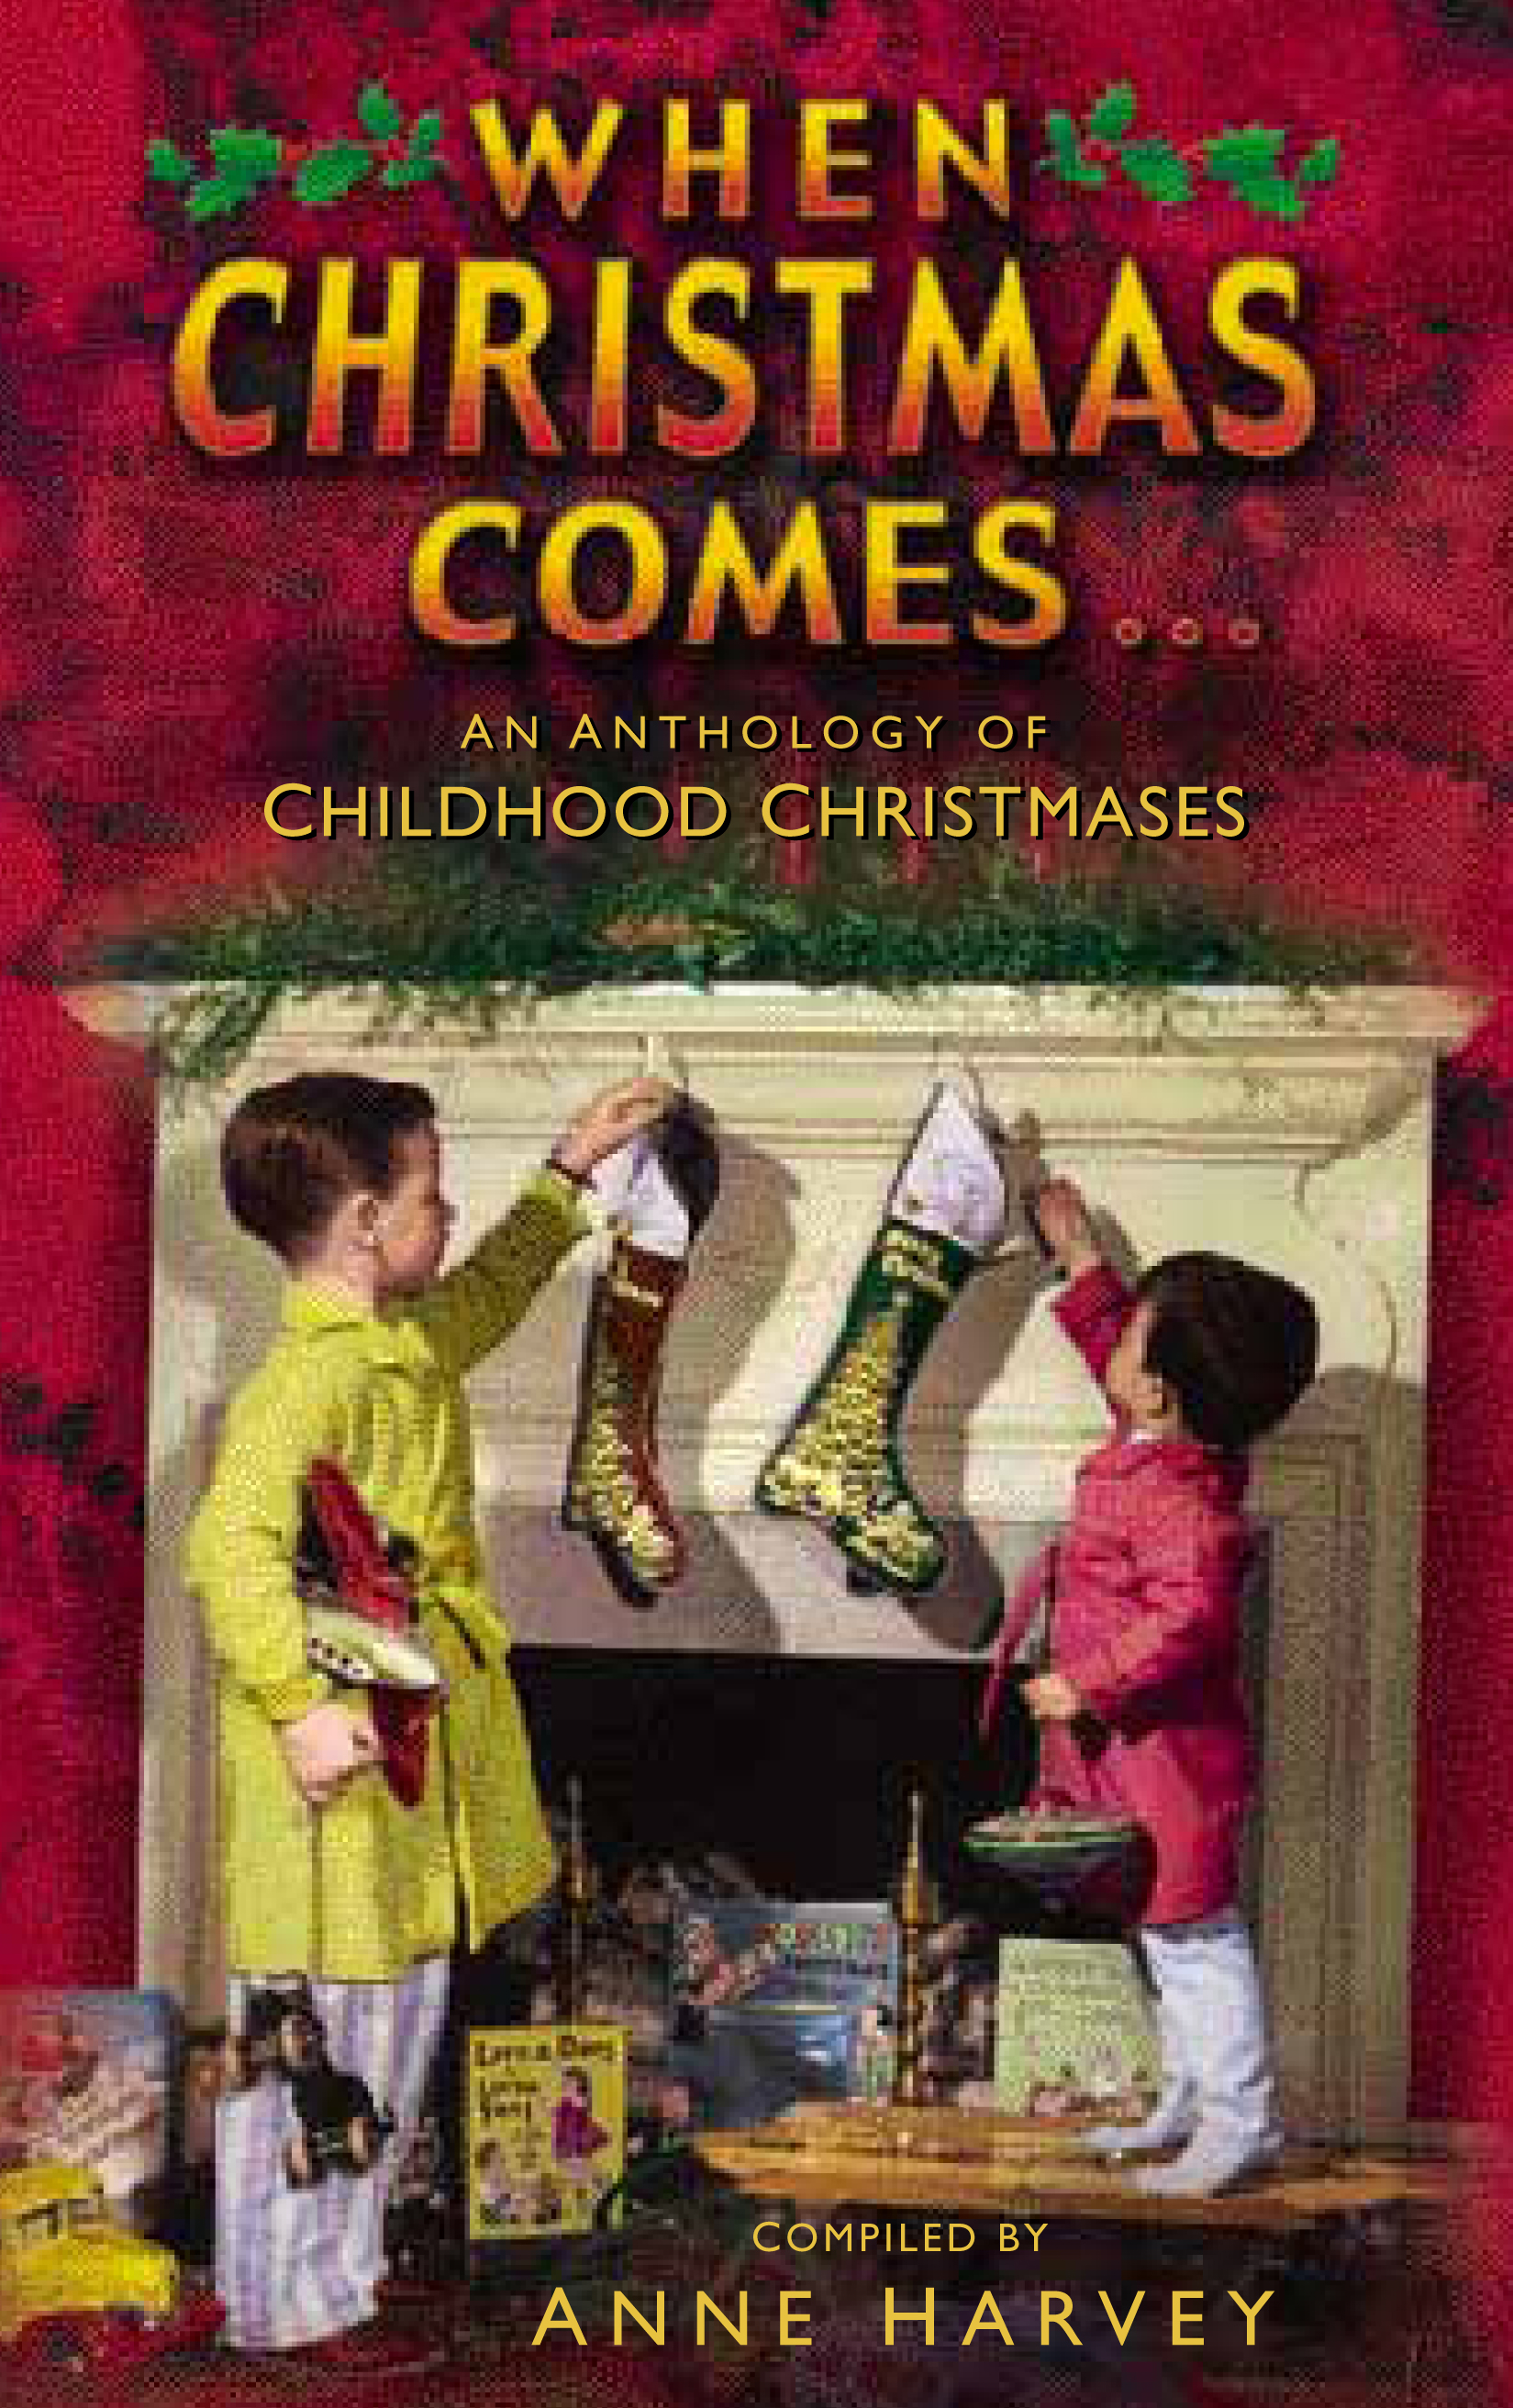 When Christmas Comes An Anthology of Childhood Christmases